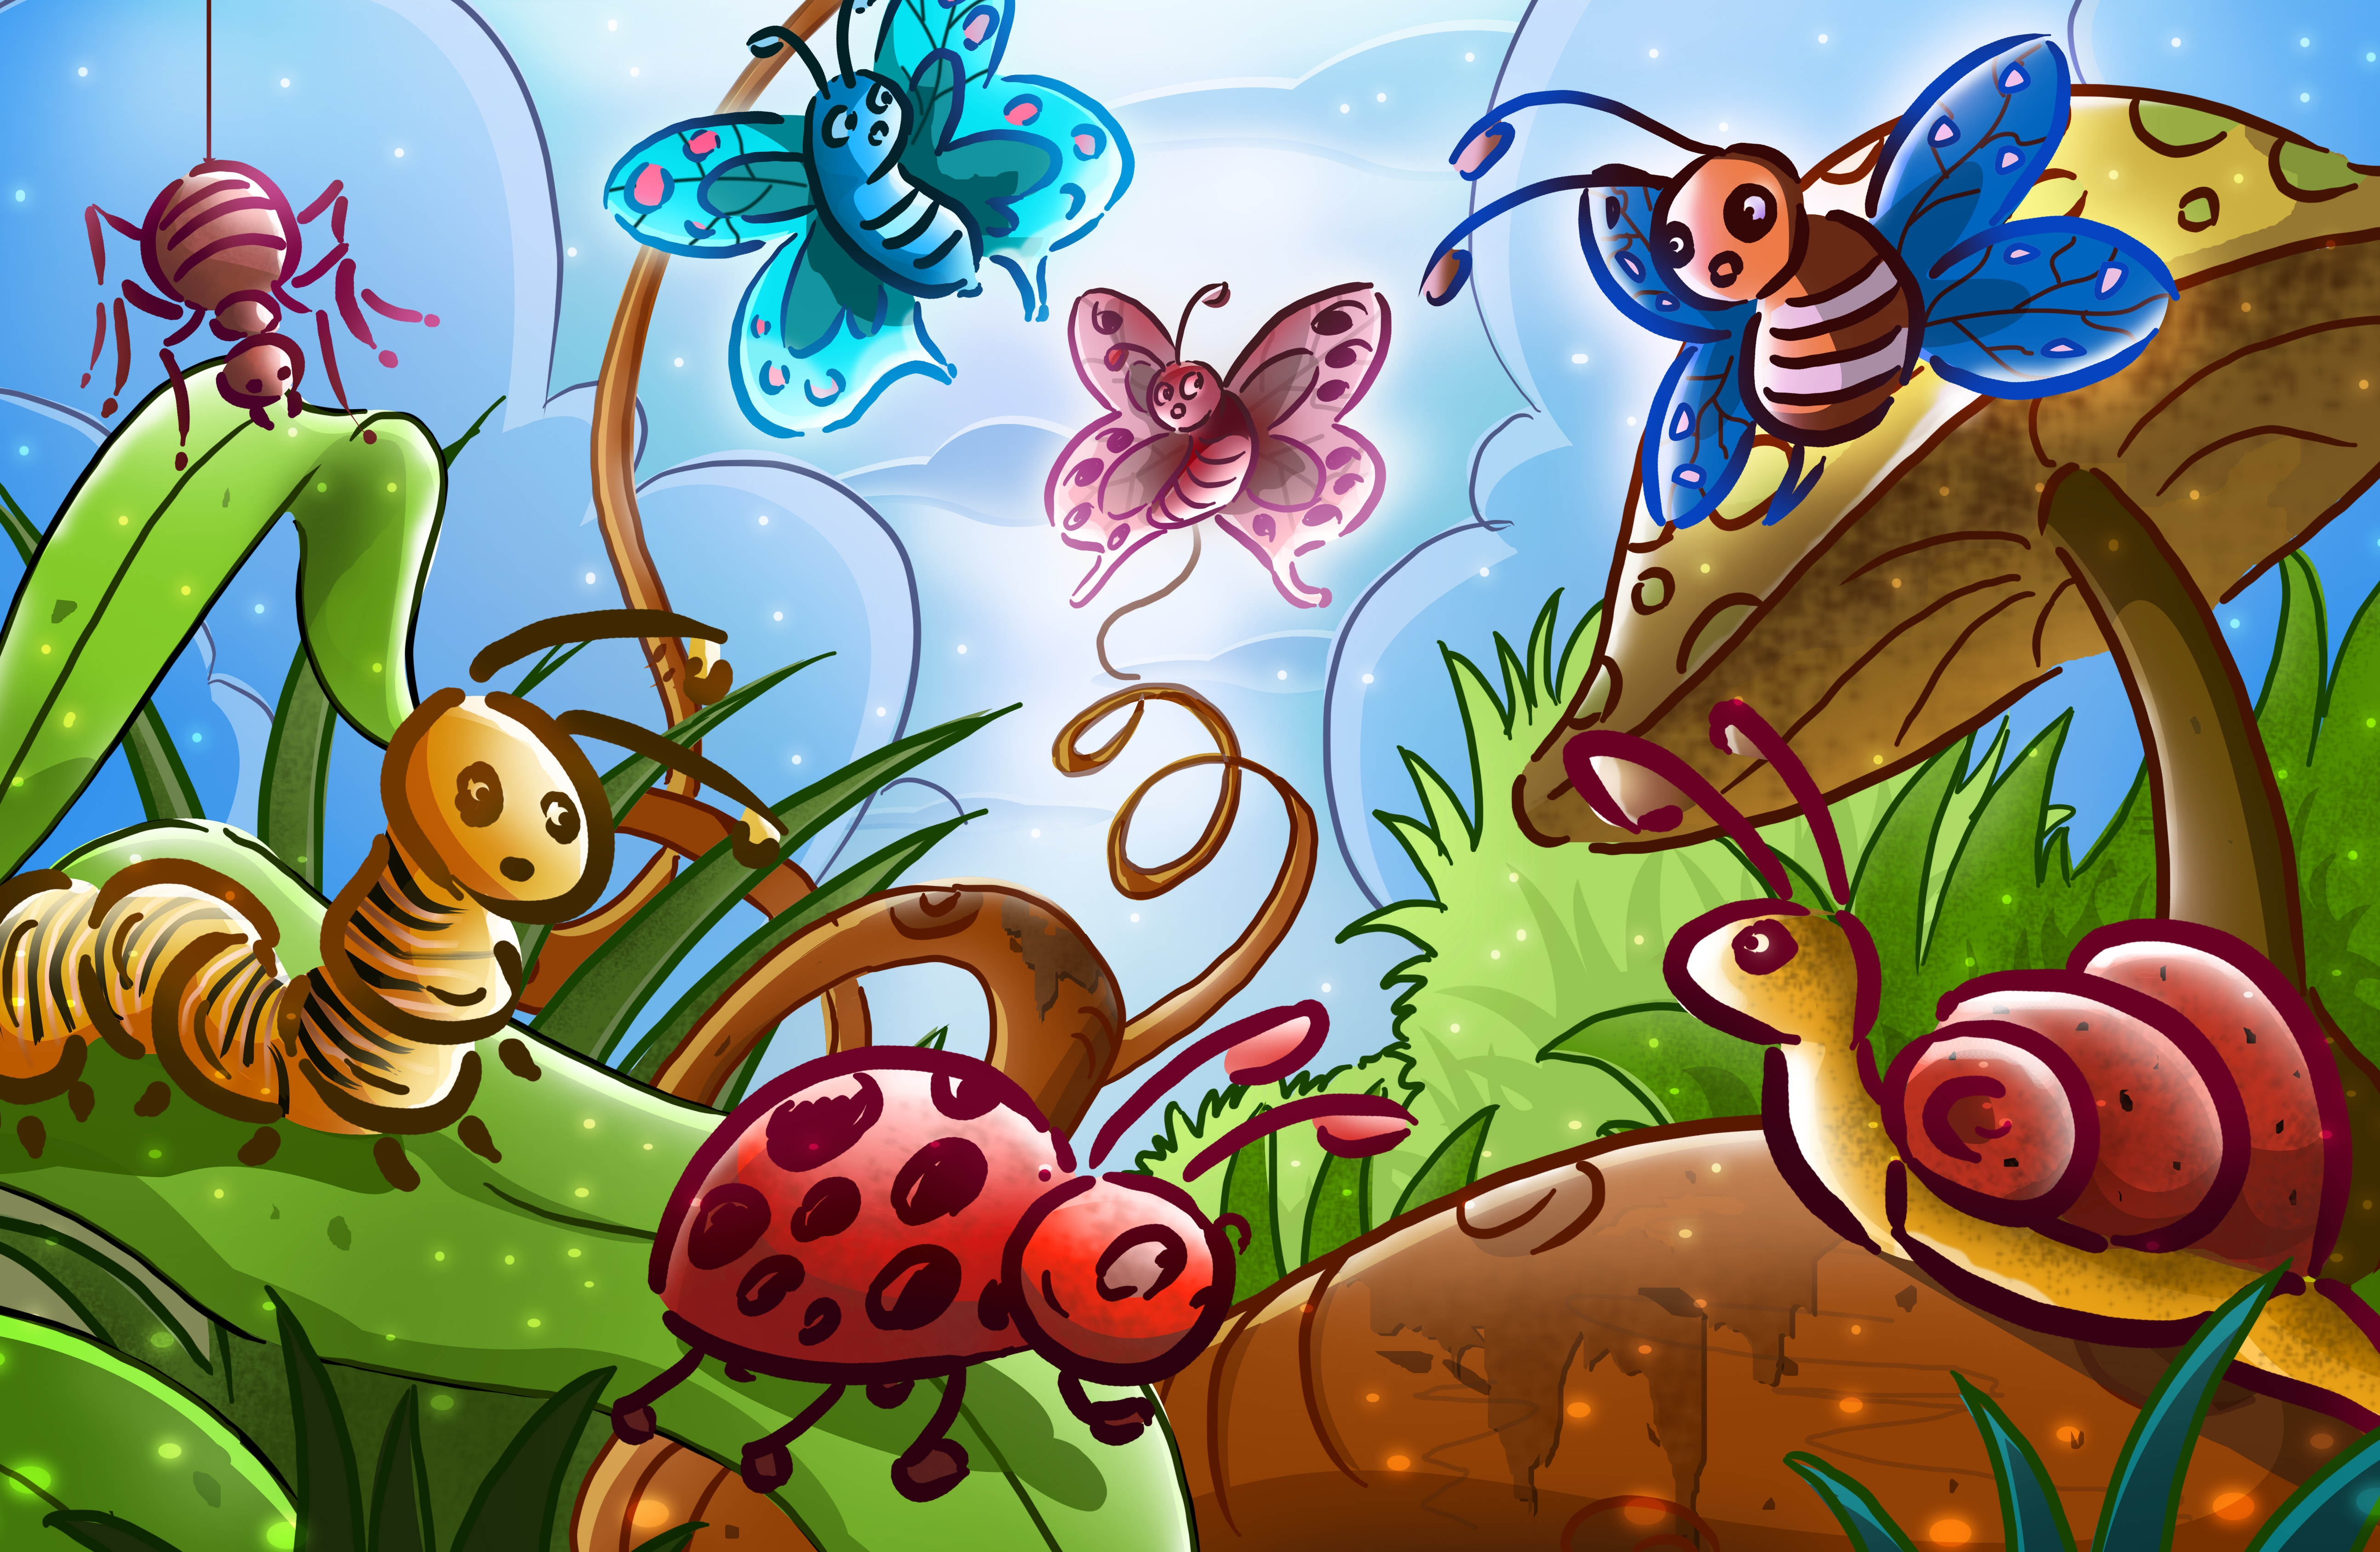 132872 download wallpaper Art, Butterflies, Bugs, Story, Fairy Tale, Spider, Insects screensavers and pictures for free